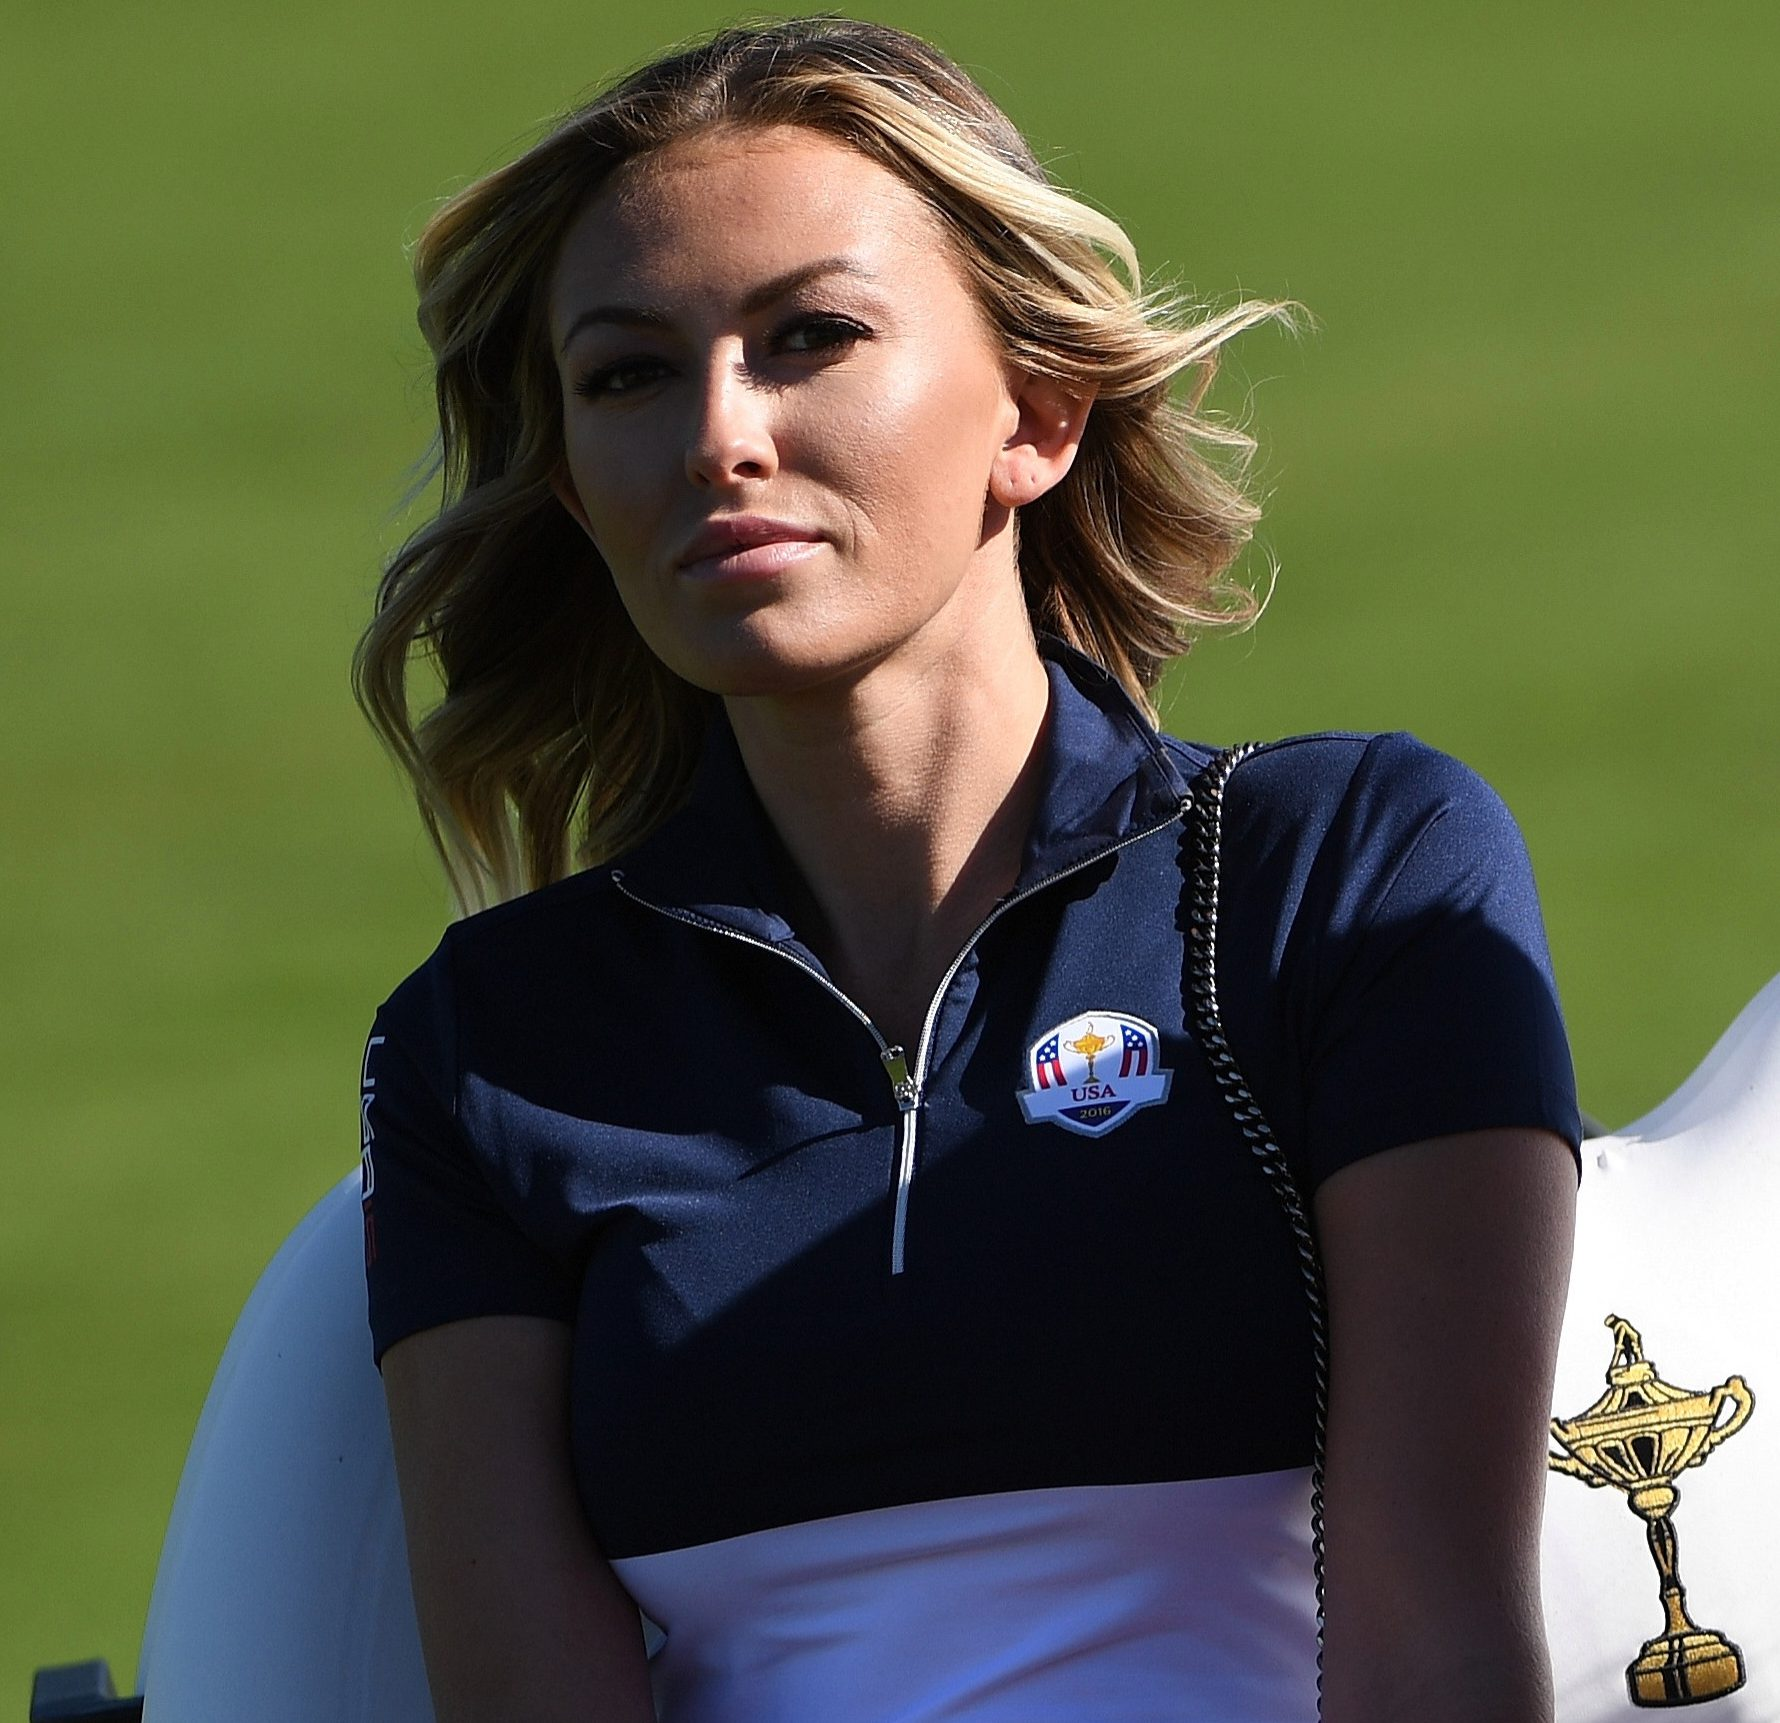 Paulina Gretzky, pictured last year, looks on as fiance Dustin Johnson helps America win back the Ryder Cup